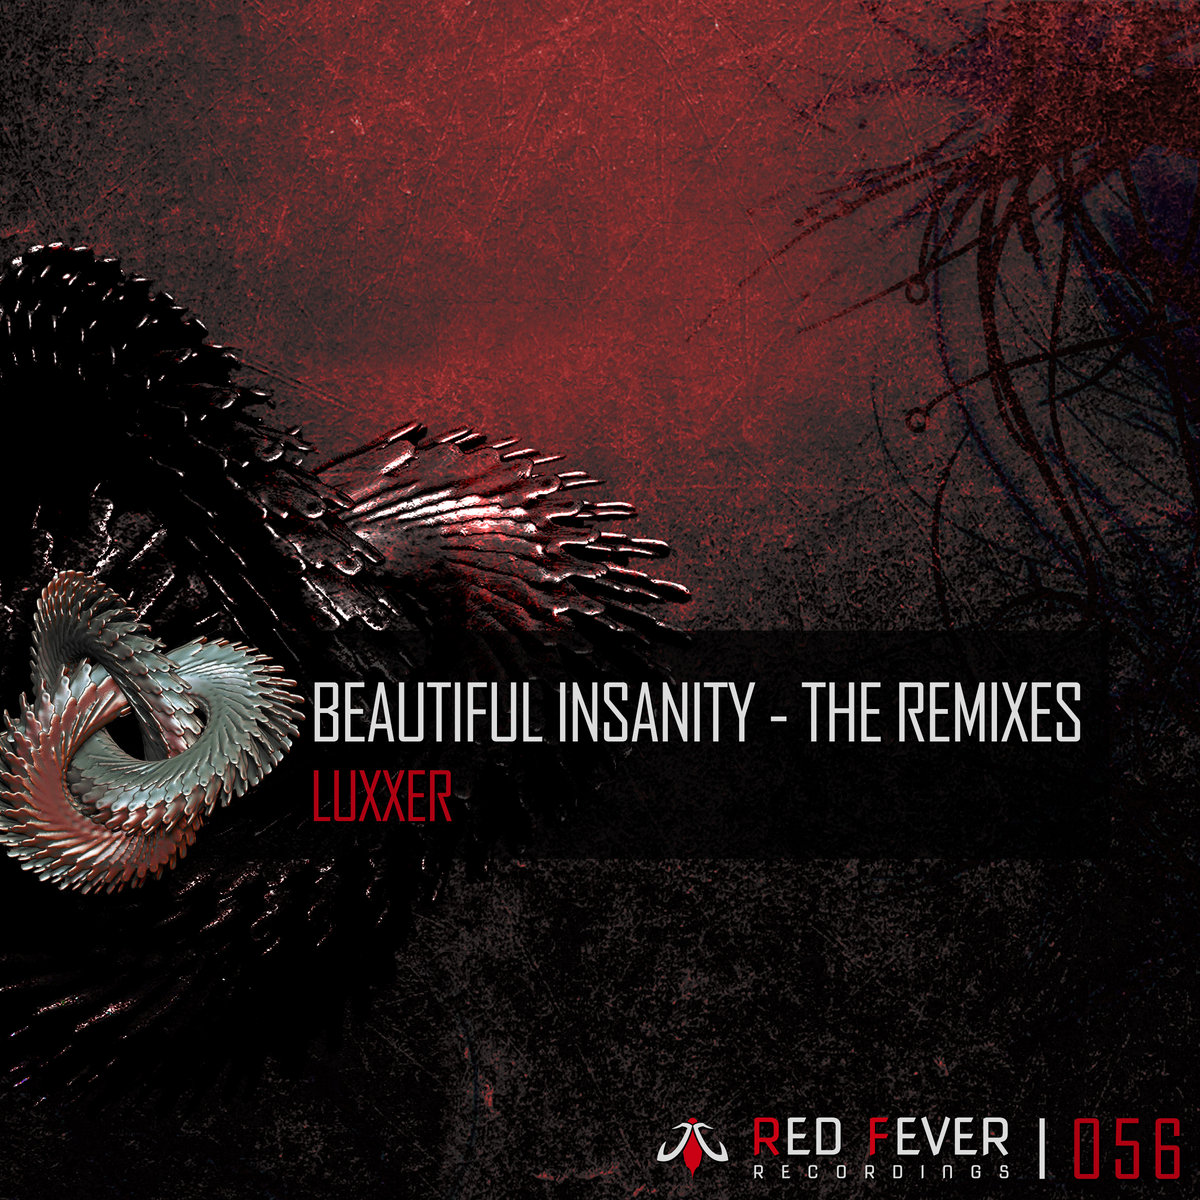 Luxxer - Beautiful Insanity (Splitt2nd remix) @ 'Beautiful Insanity (The remixes)' album (carnage, cluster)